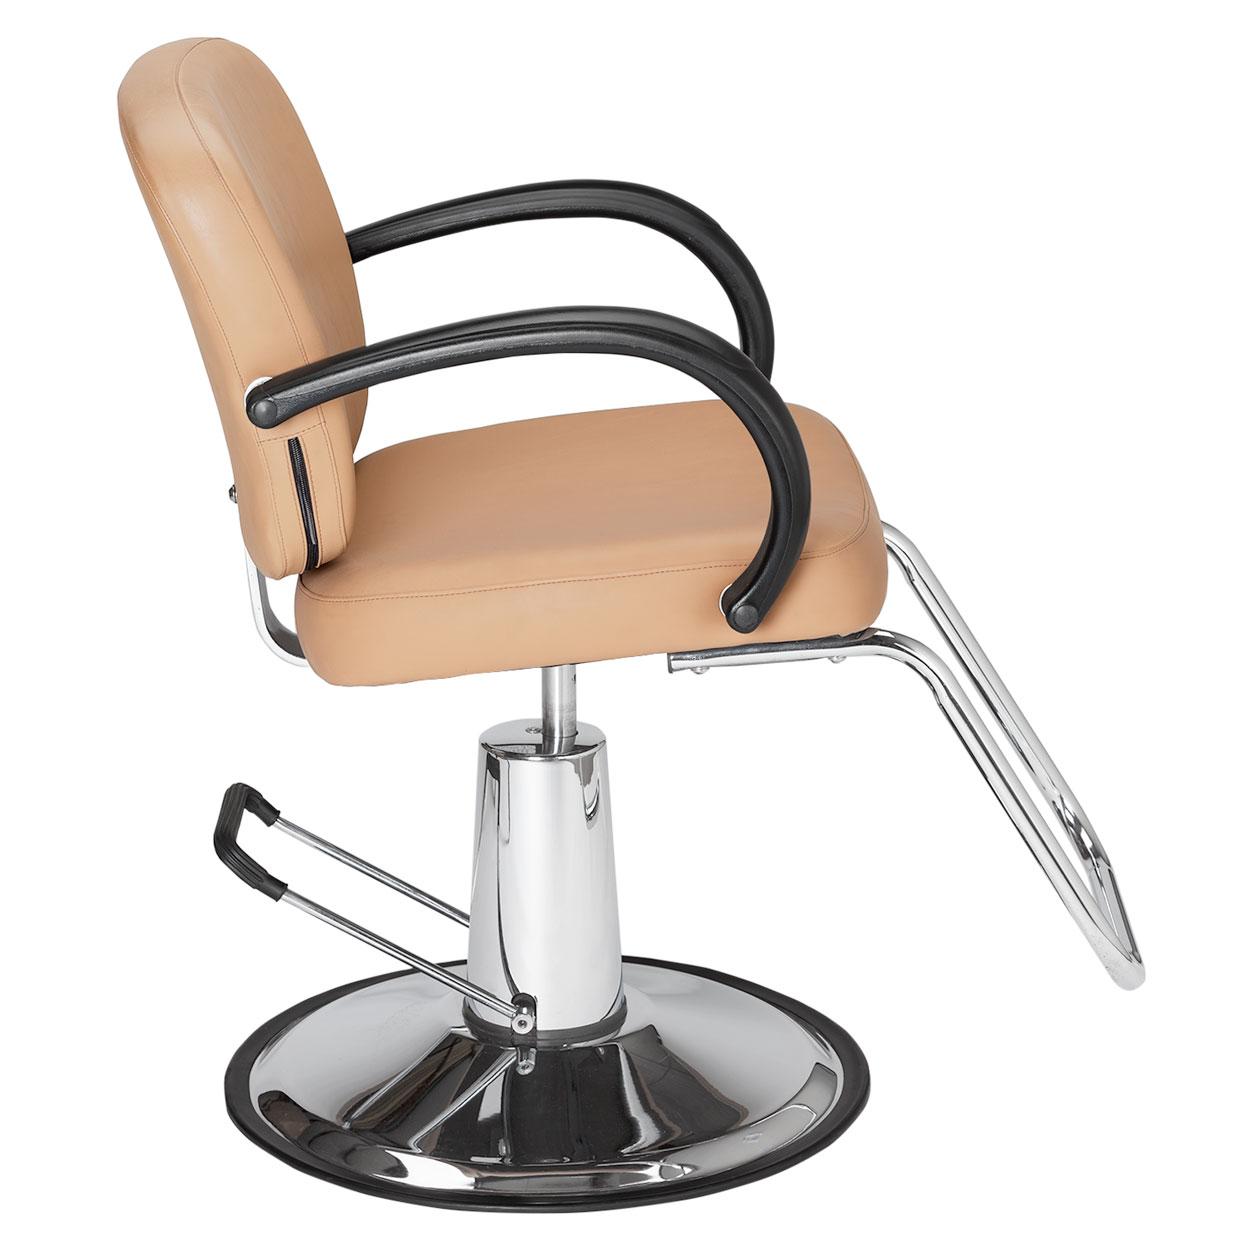 Pibbs 3606 Messina Styling Chair alternative product image 2